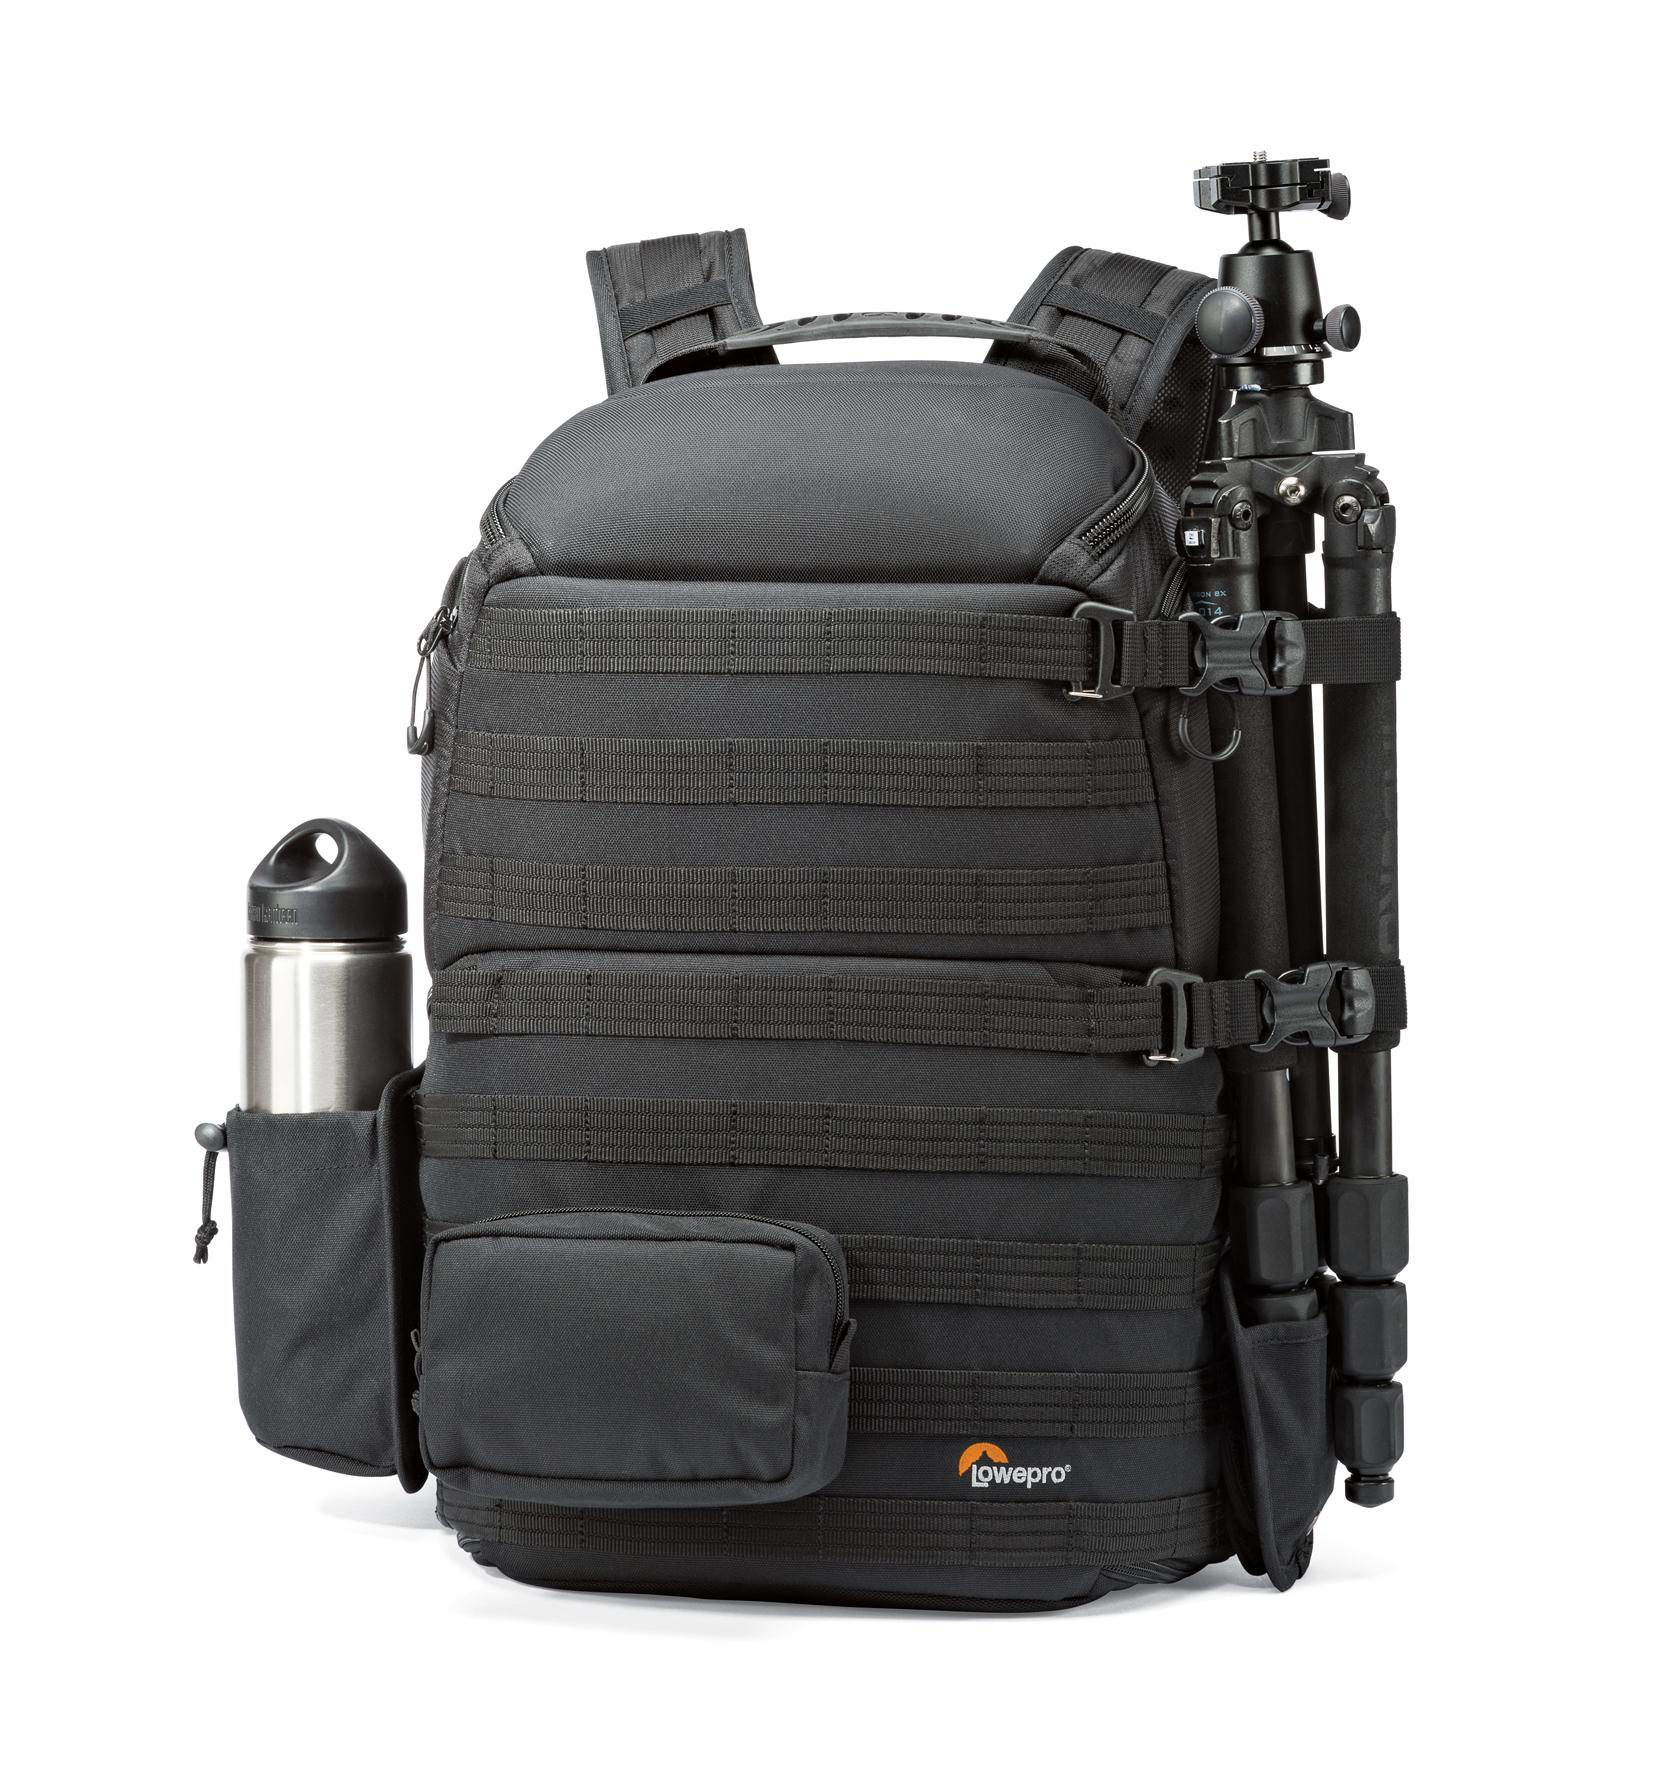 Lowepro Protactic 450 Aw Camera Backpack